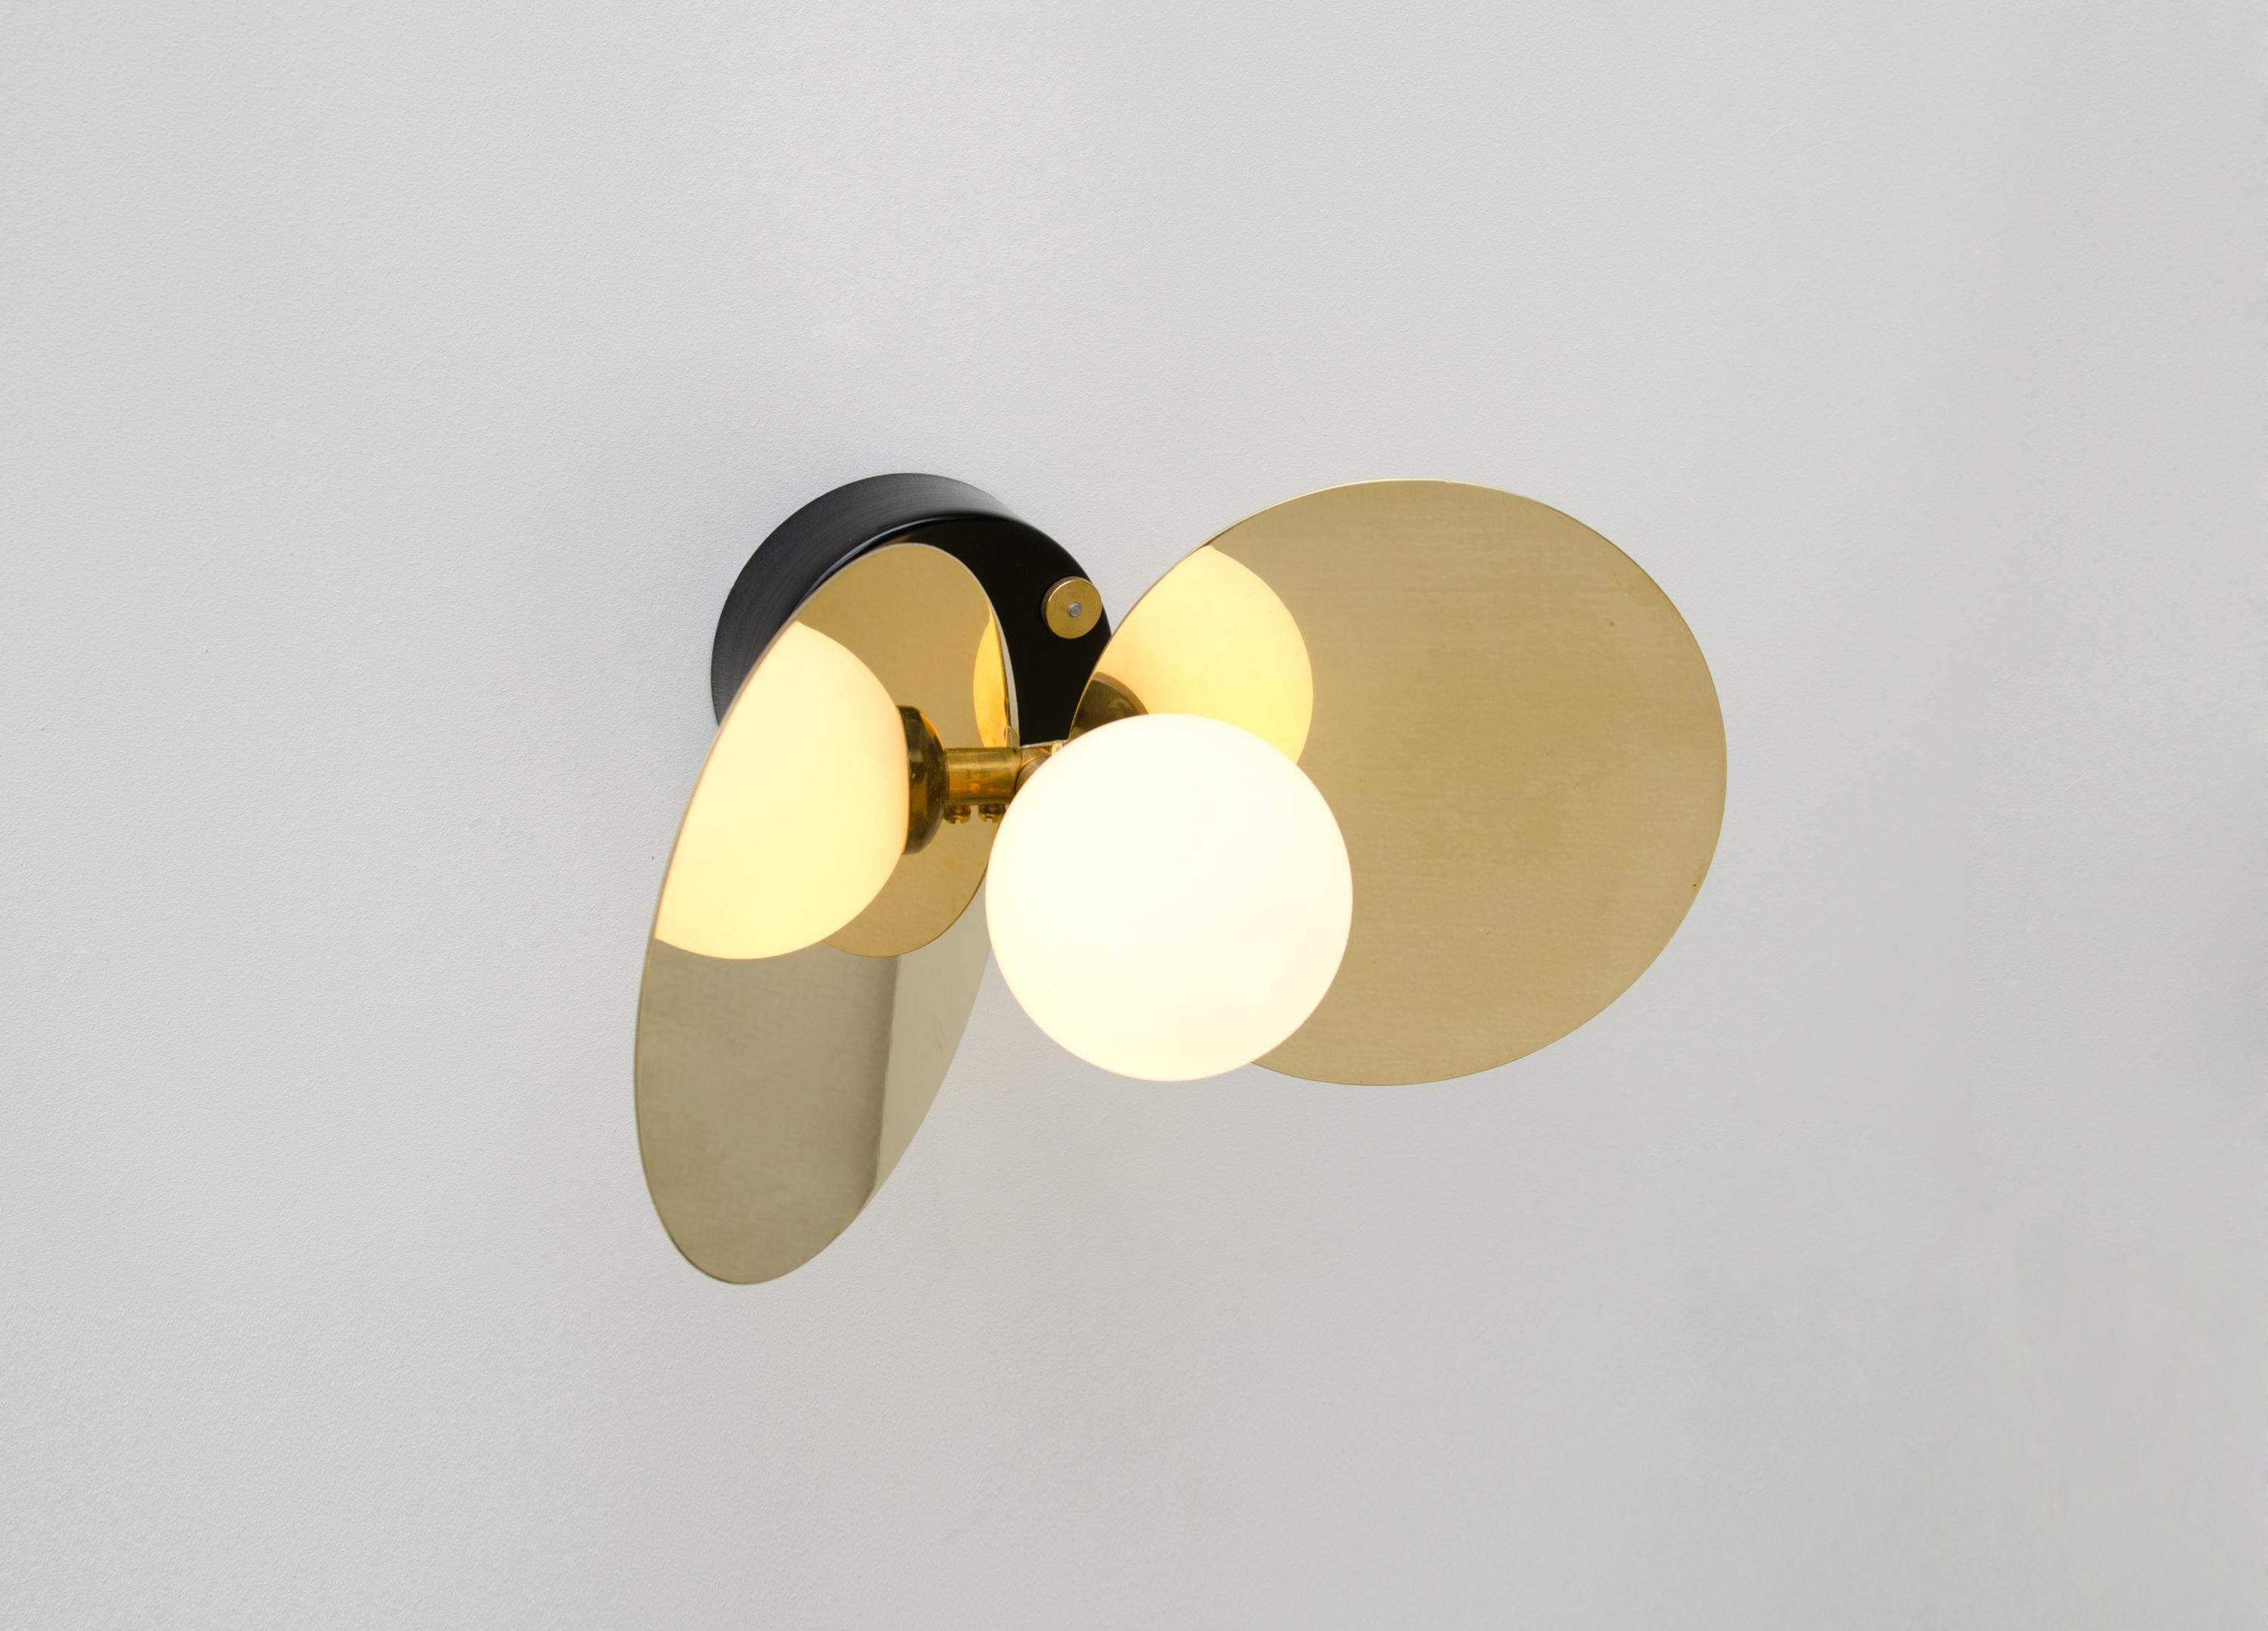 Ilios wall lamp wall lights from atelier areti architonic ilios wall lamp by atelier areti aloadofball Choice Image